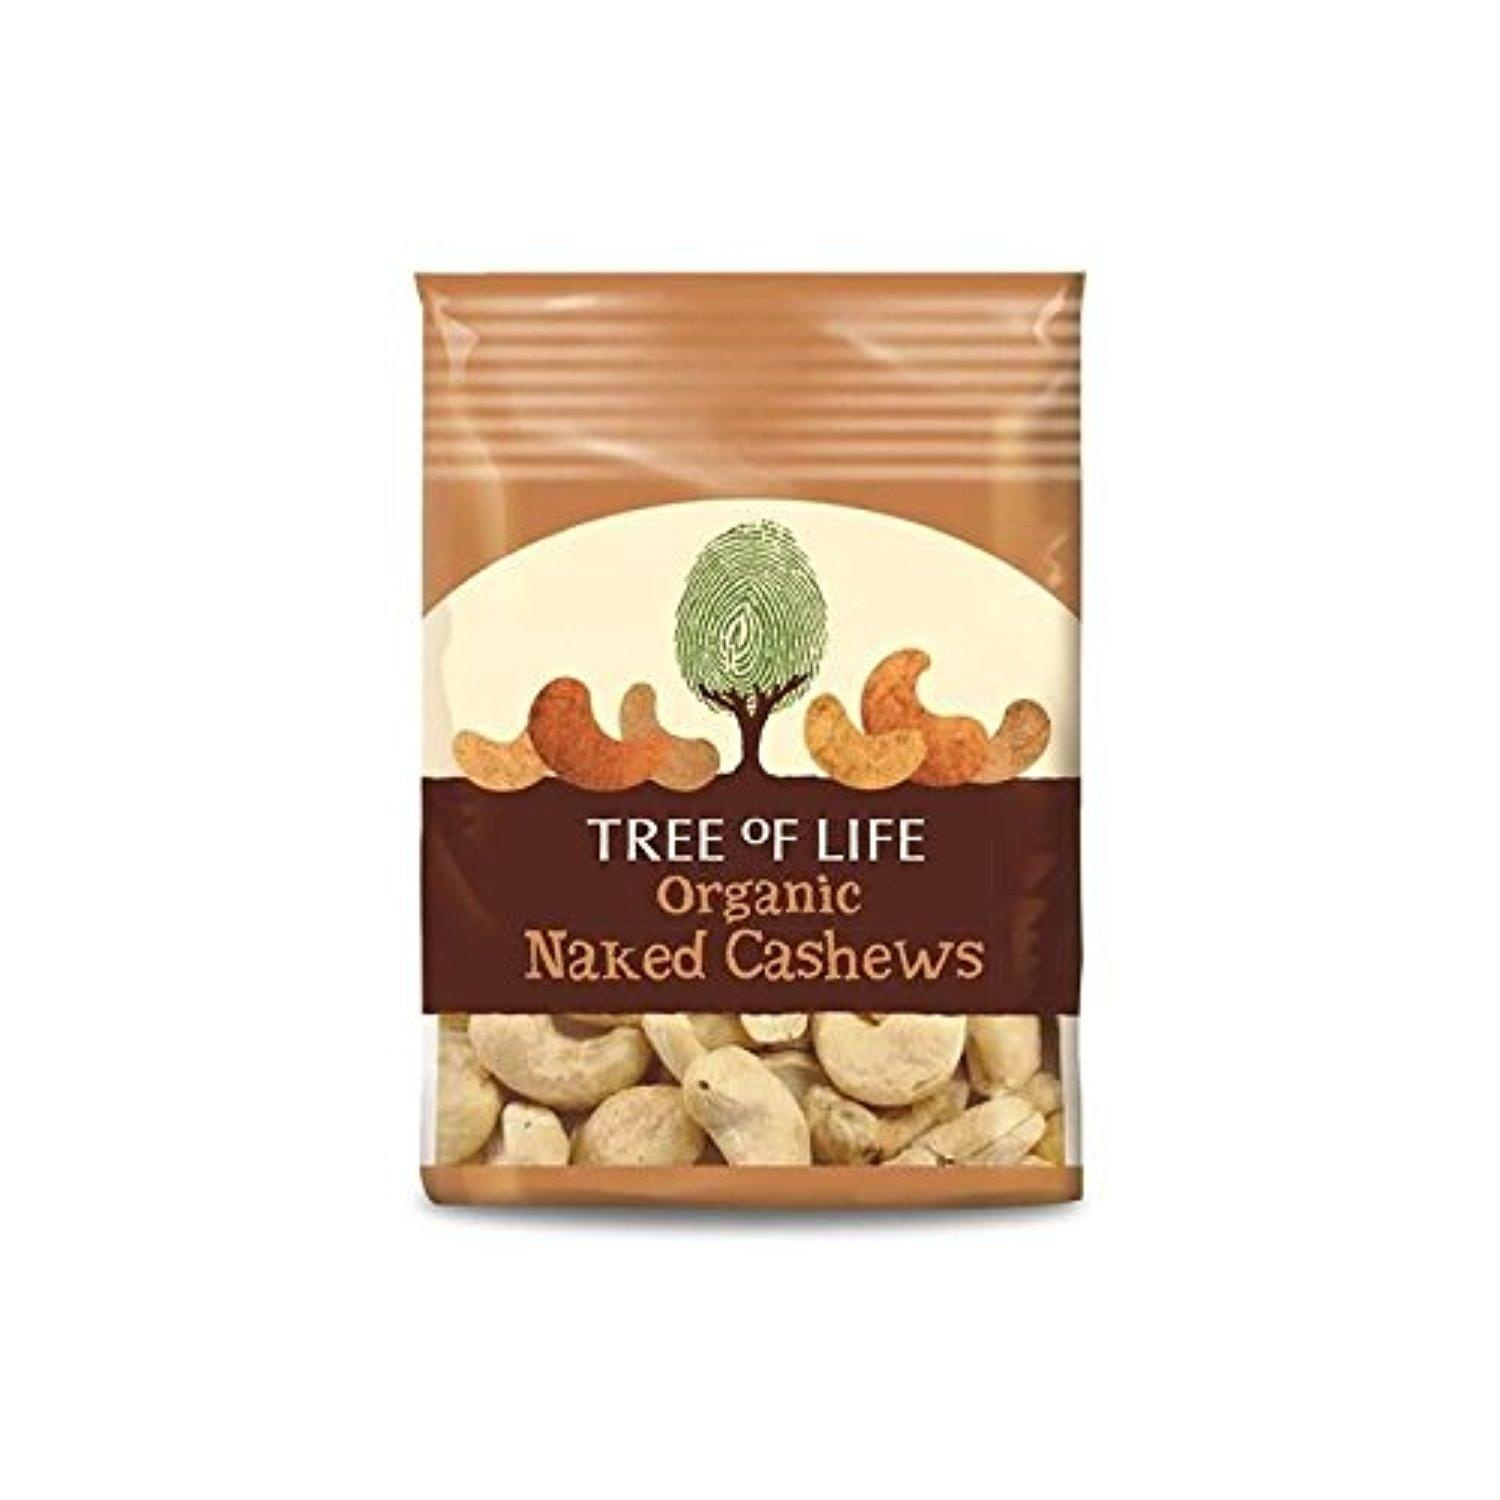 Tree of Life Organic Naked Cashews 40g - Pack of 2